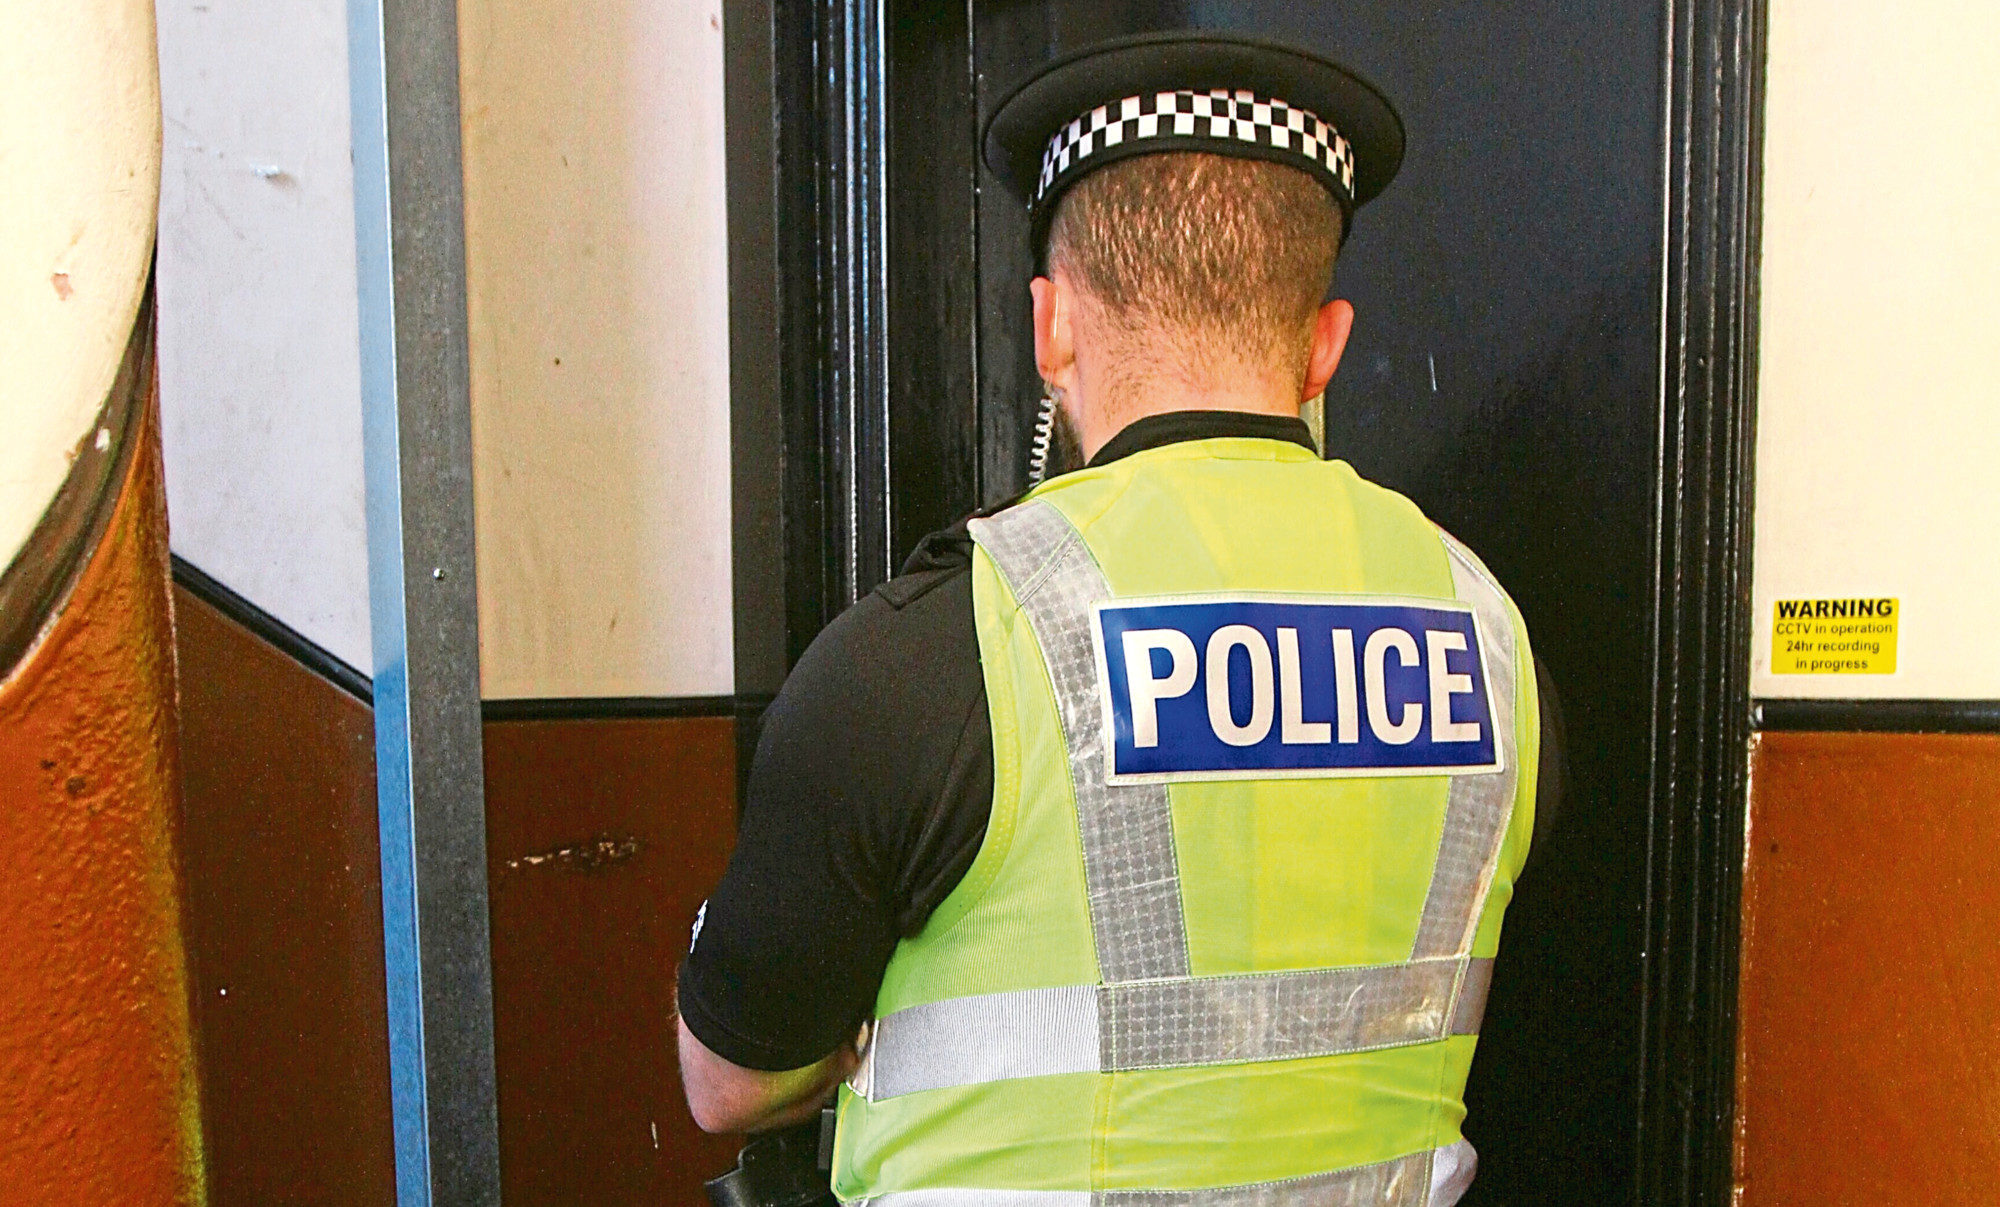 A police officer on duty at the door of the flat in Brown Constable Street